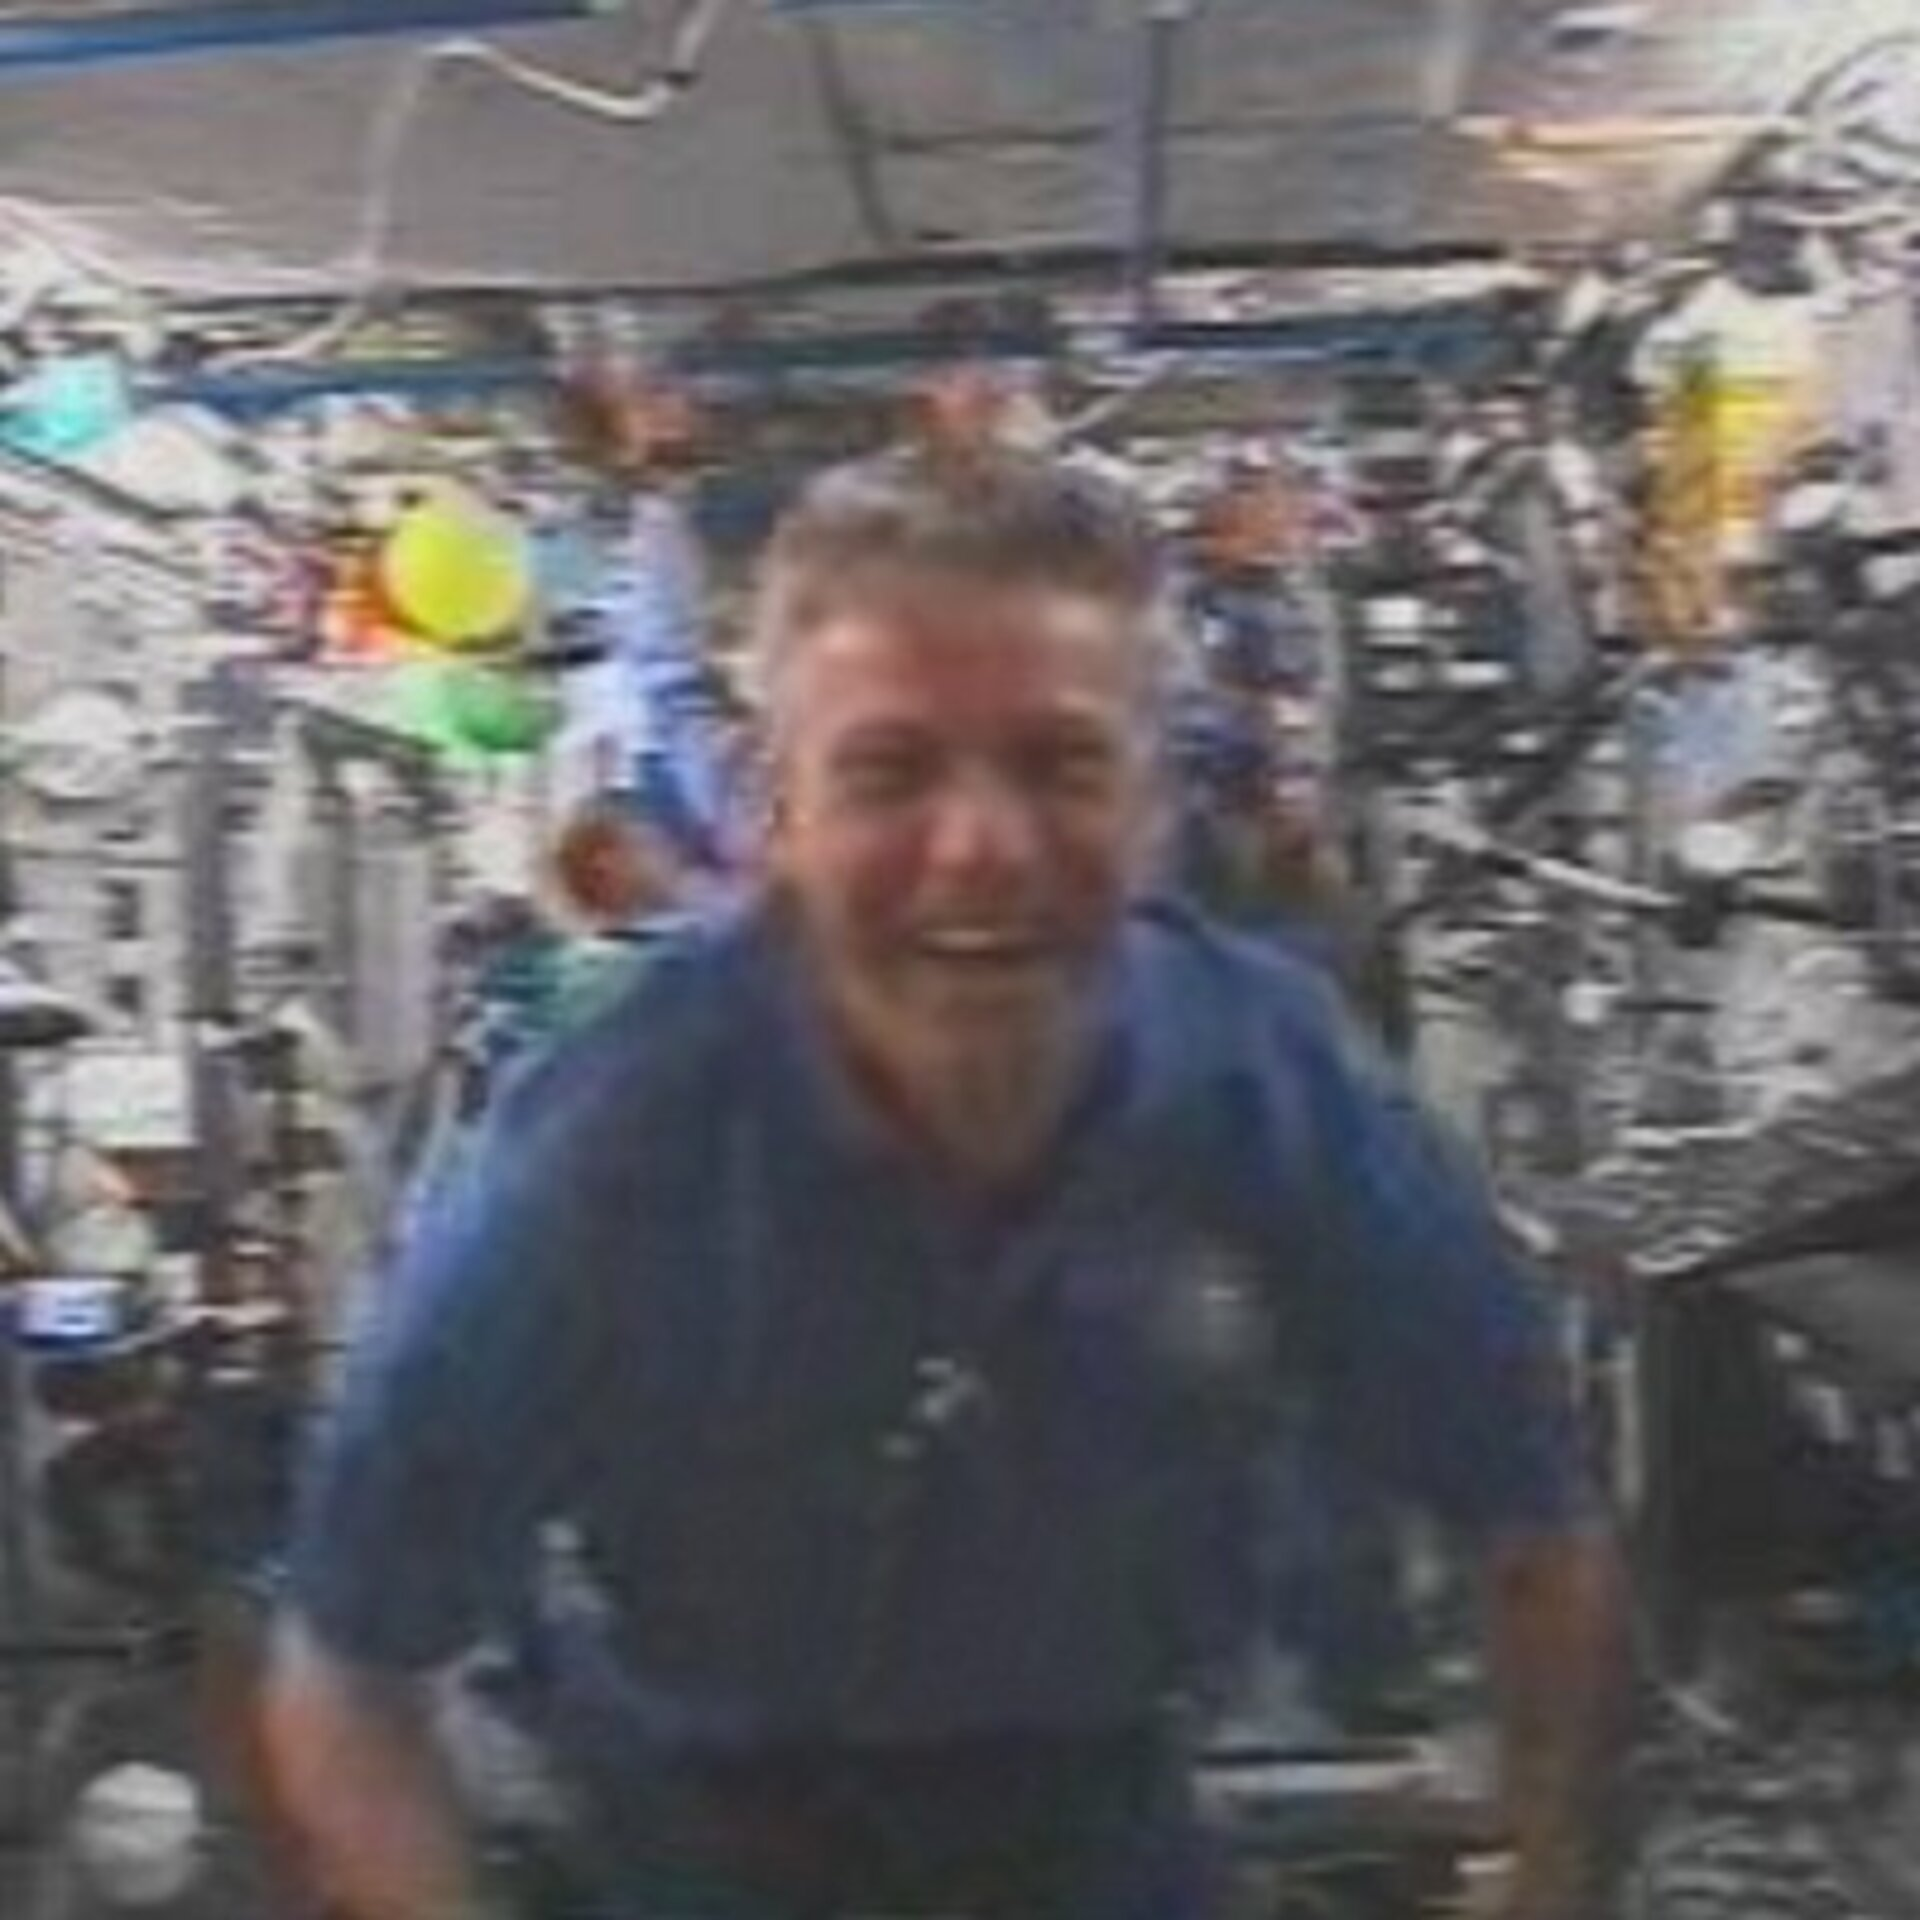 Thomas Reiter shortly after entering ISS for the first time